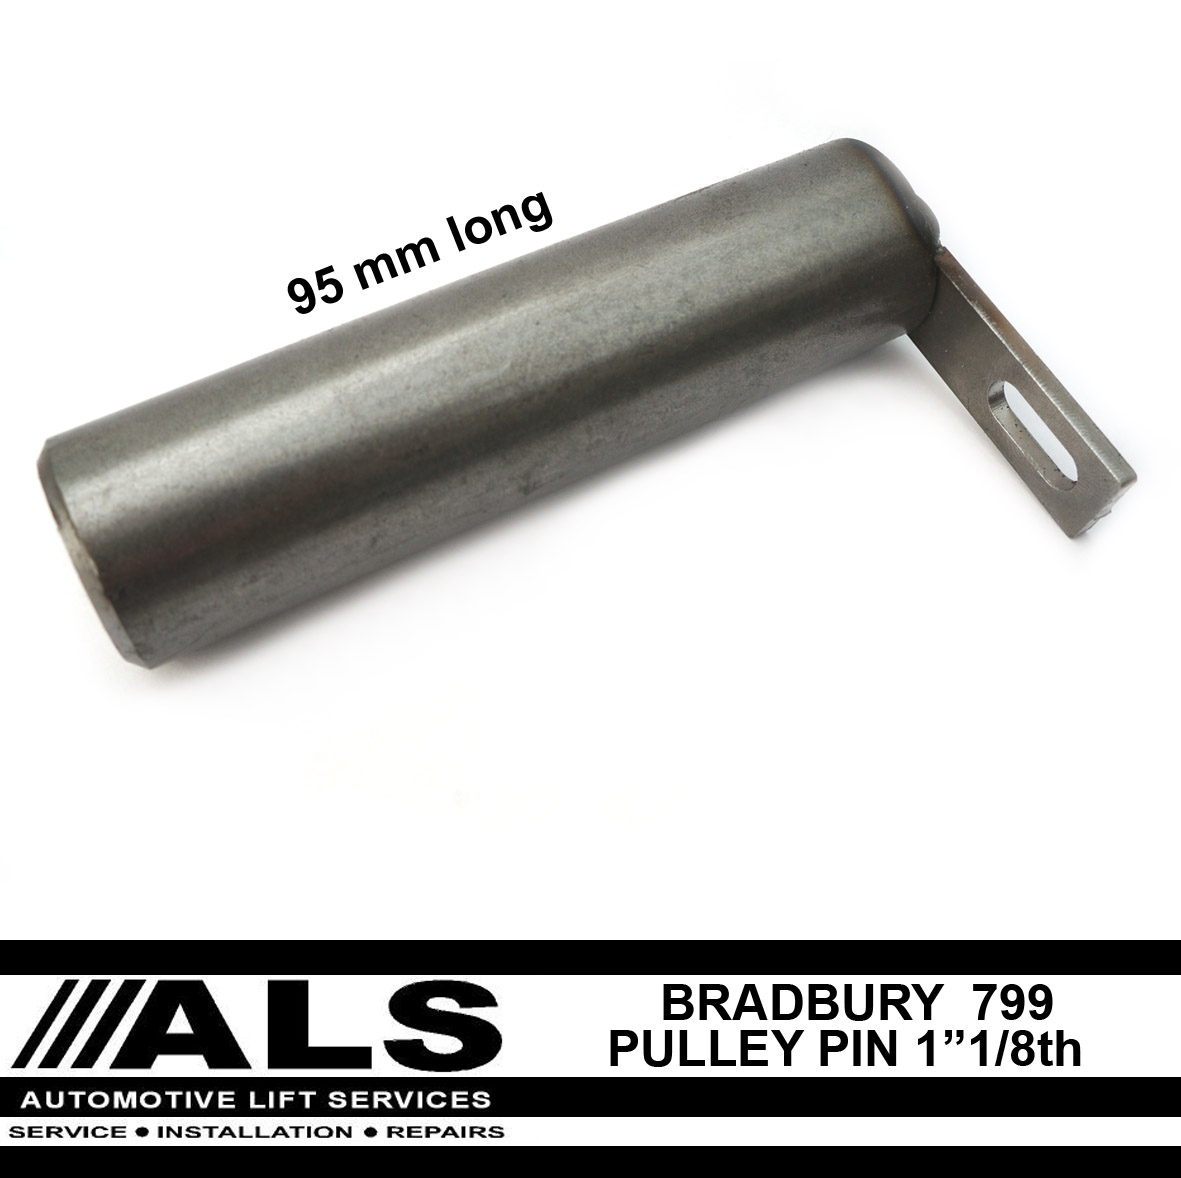 bradbury small bore pin 95mm